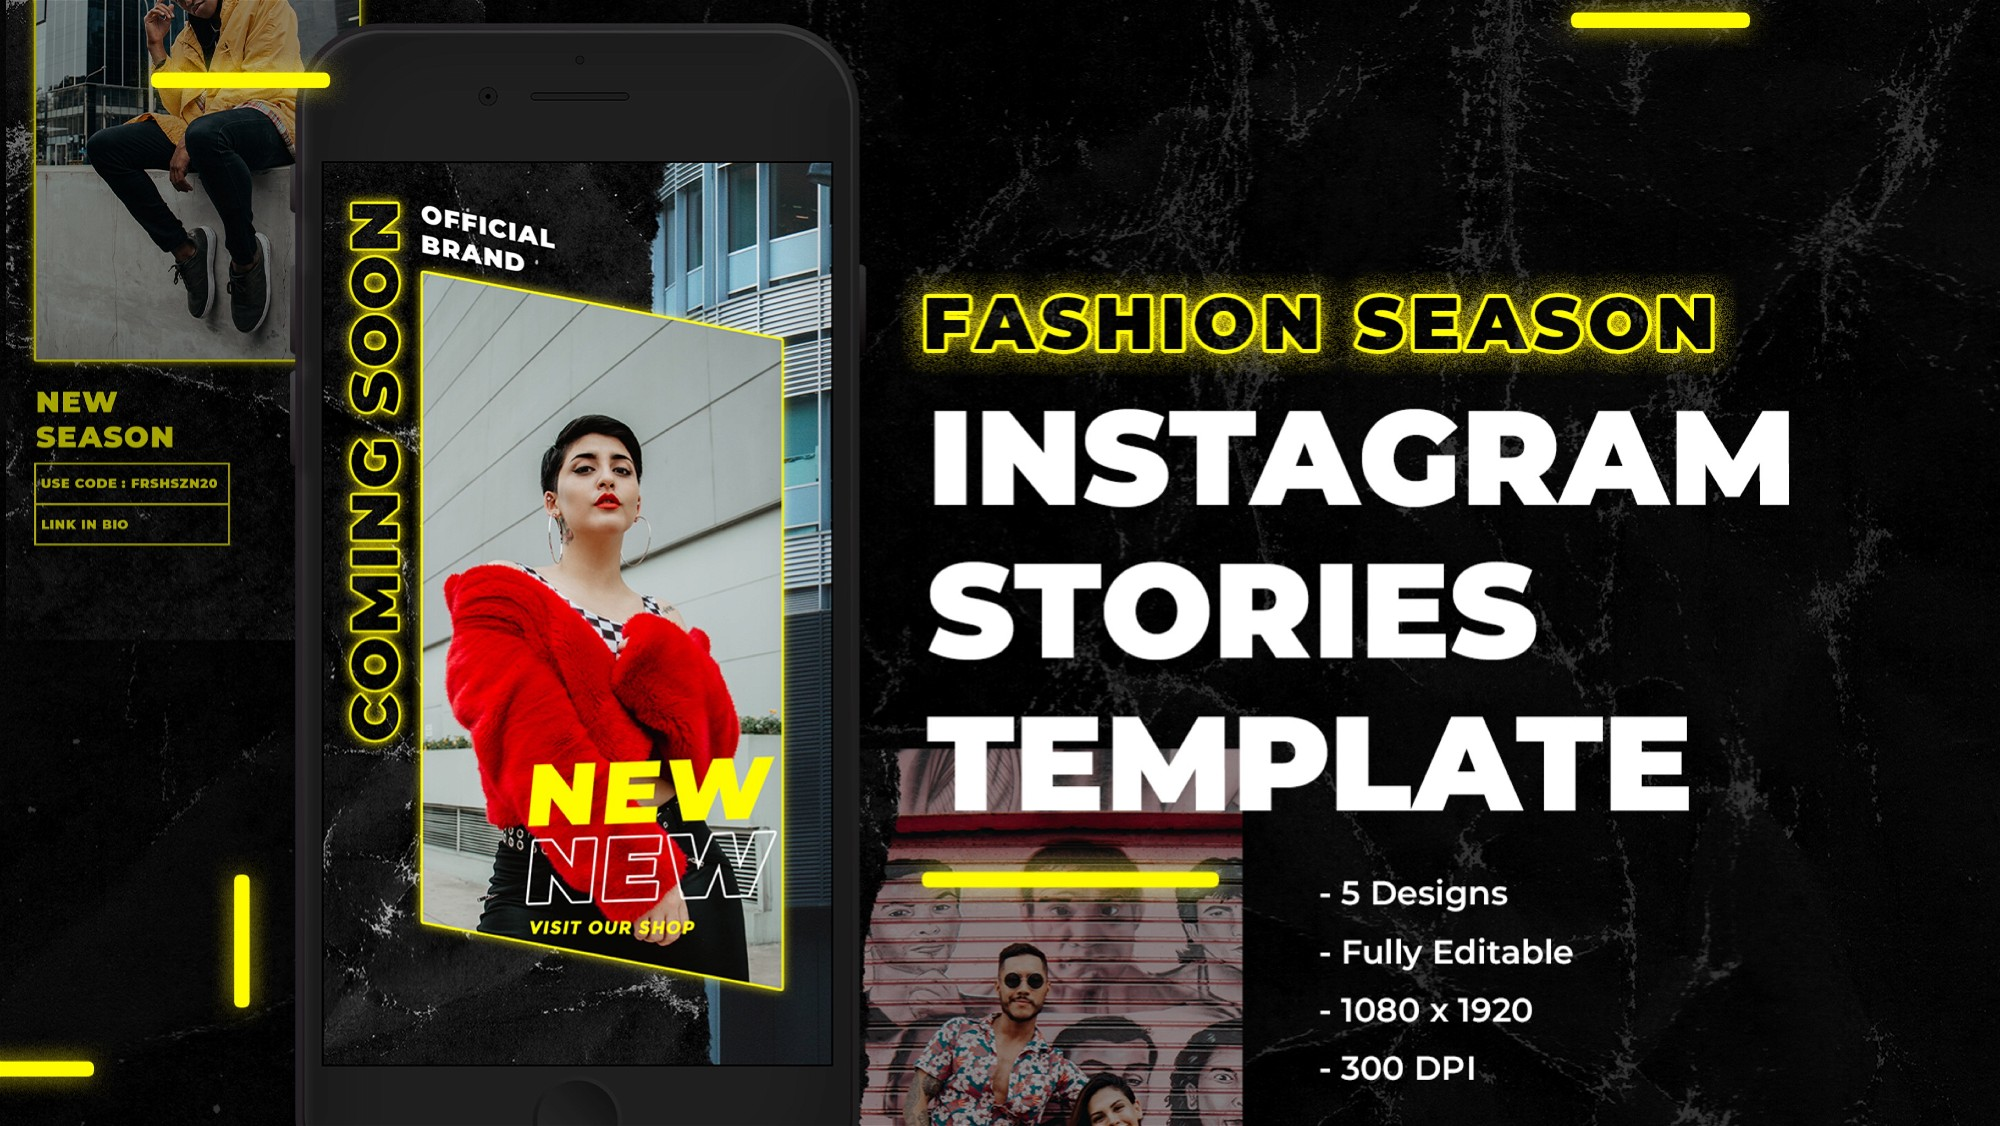 AppSumo Deal for Instagram Stories Template for Fashion Brands